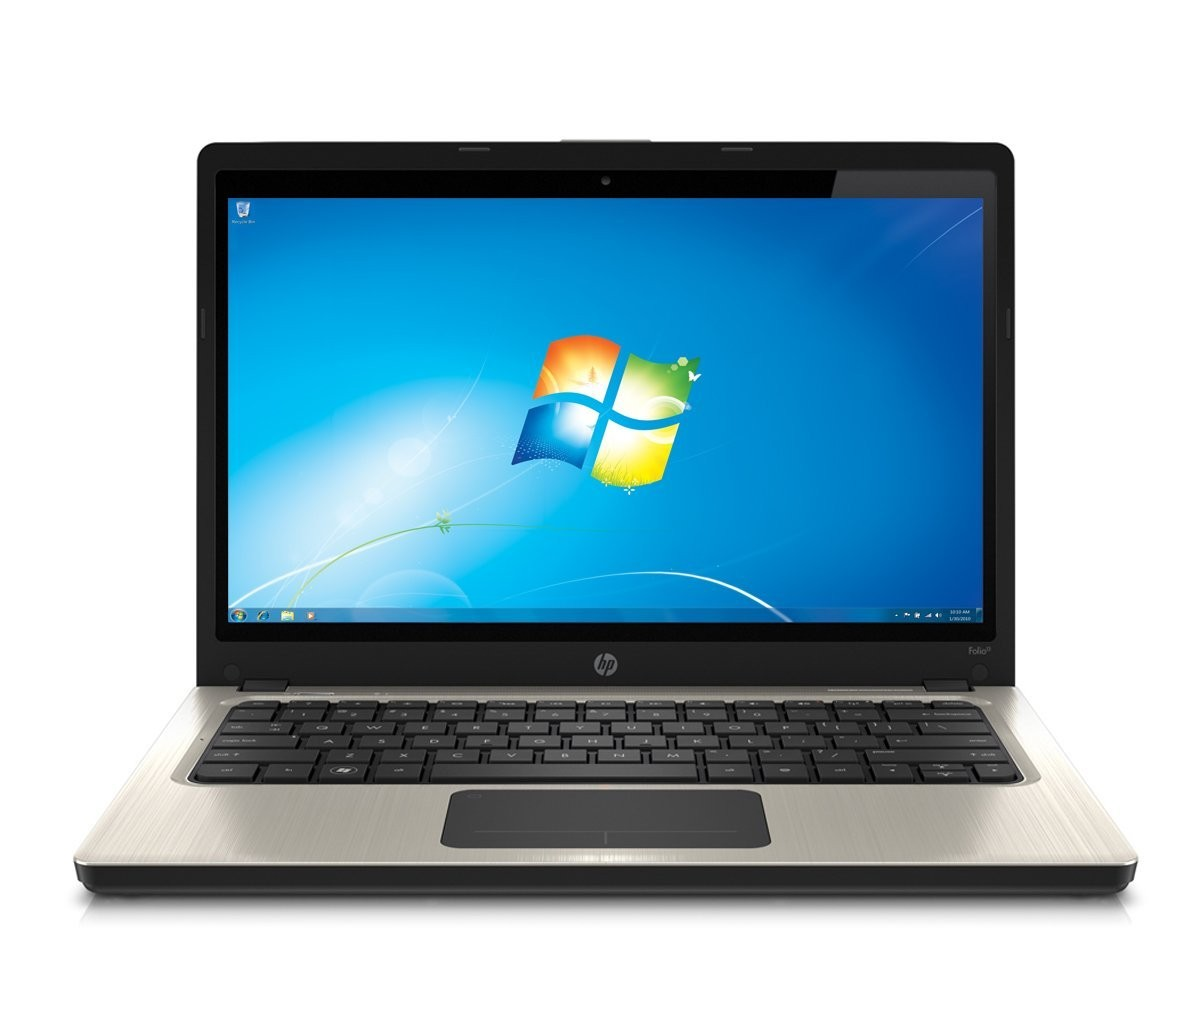 Laptop cũ HP Elitebook Folio 9470m (I53437-4-128SSD-ON) Silver